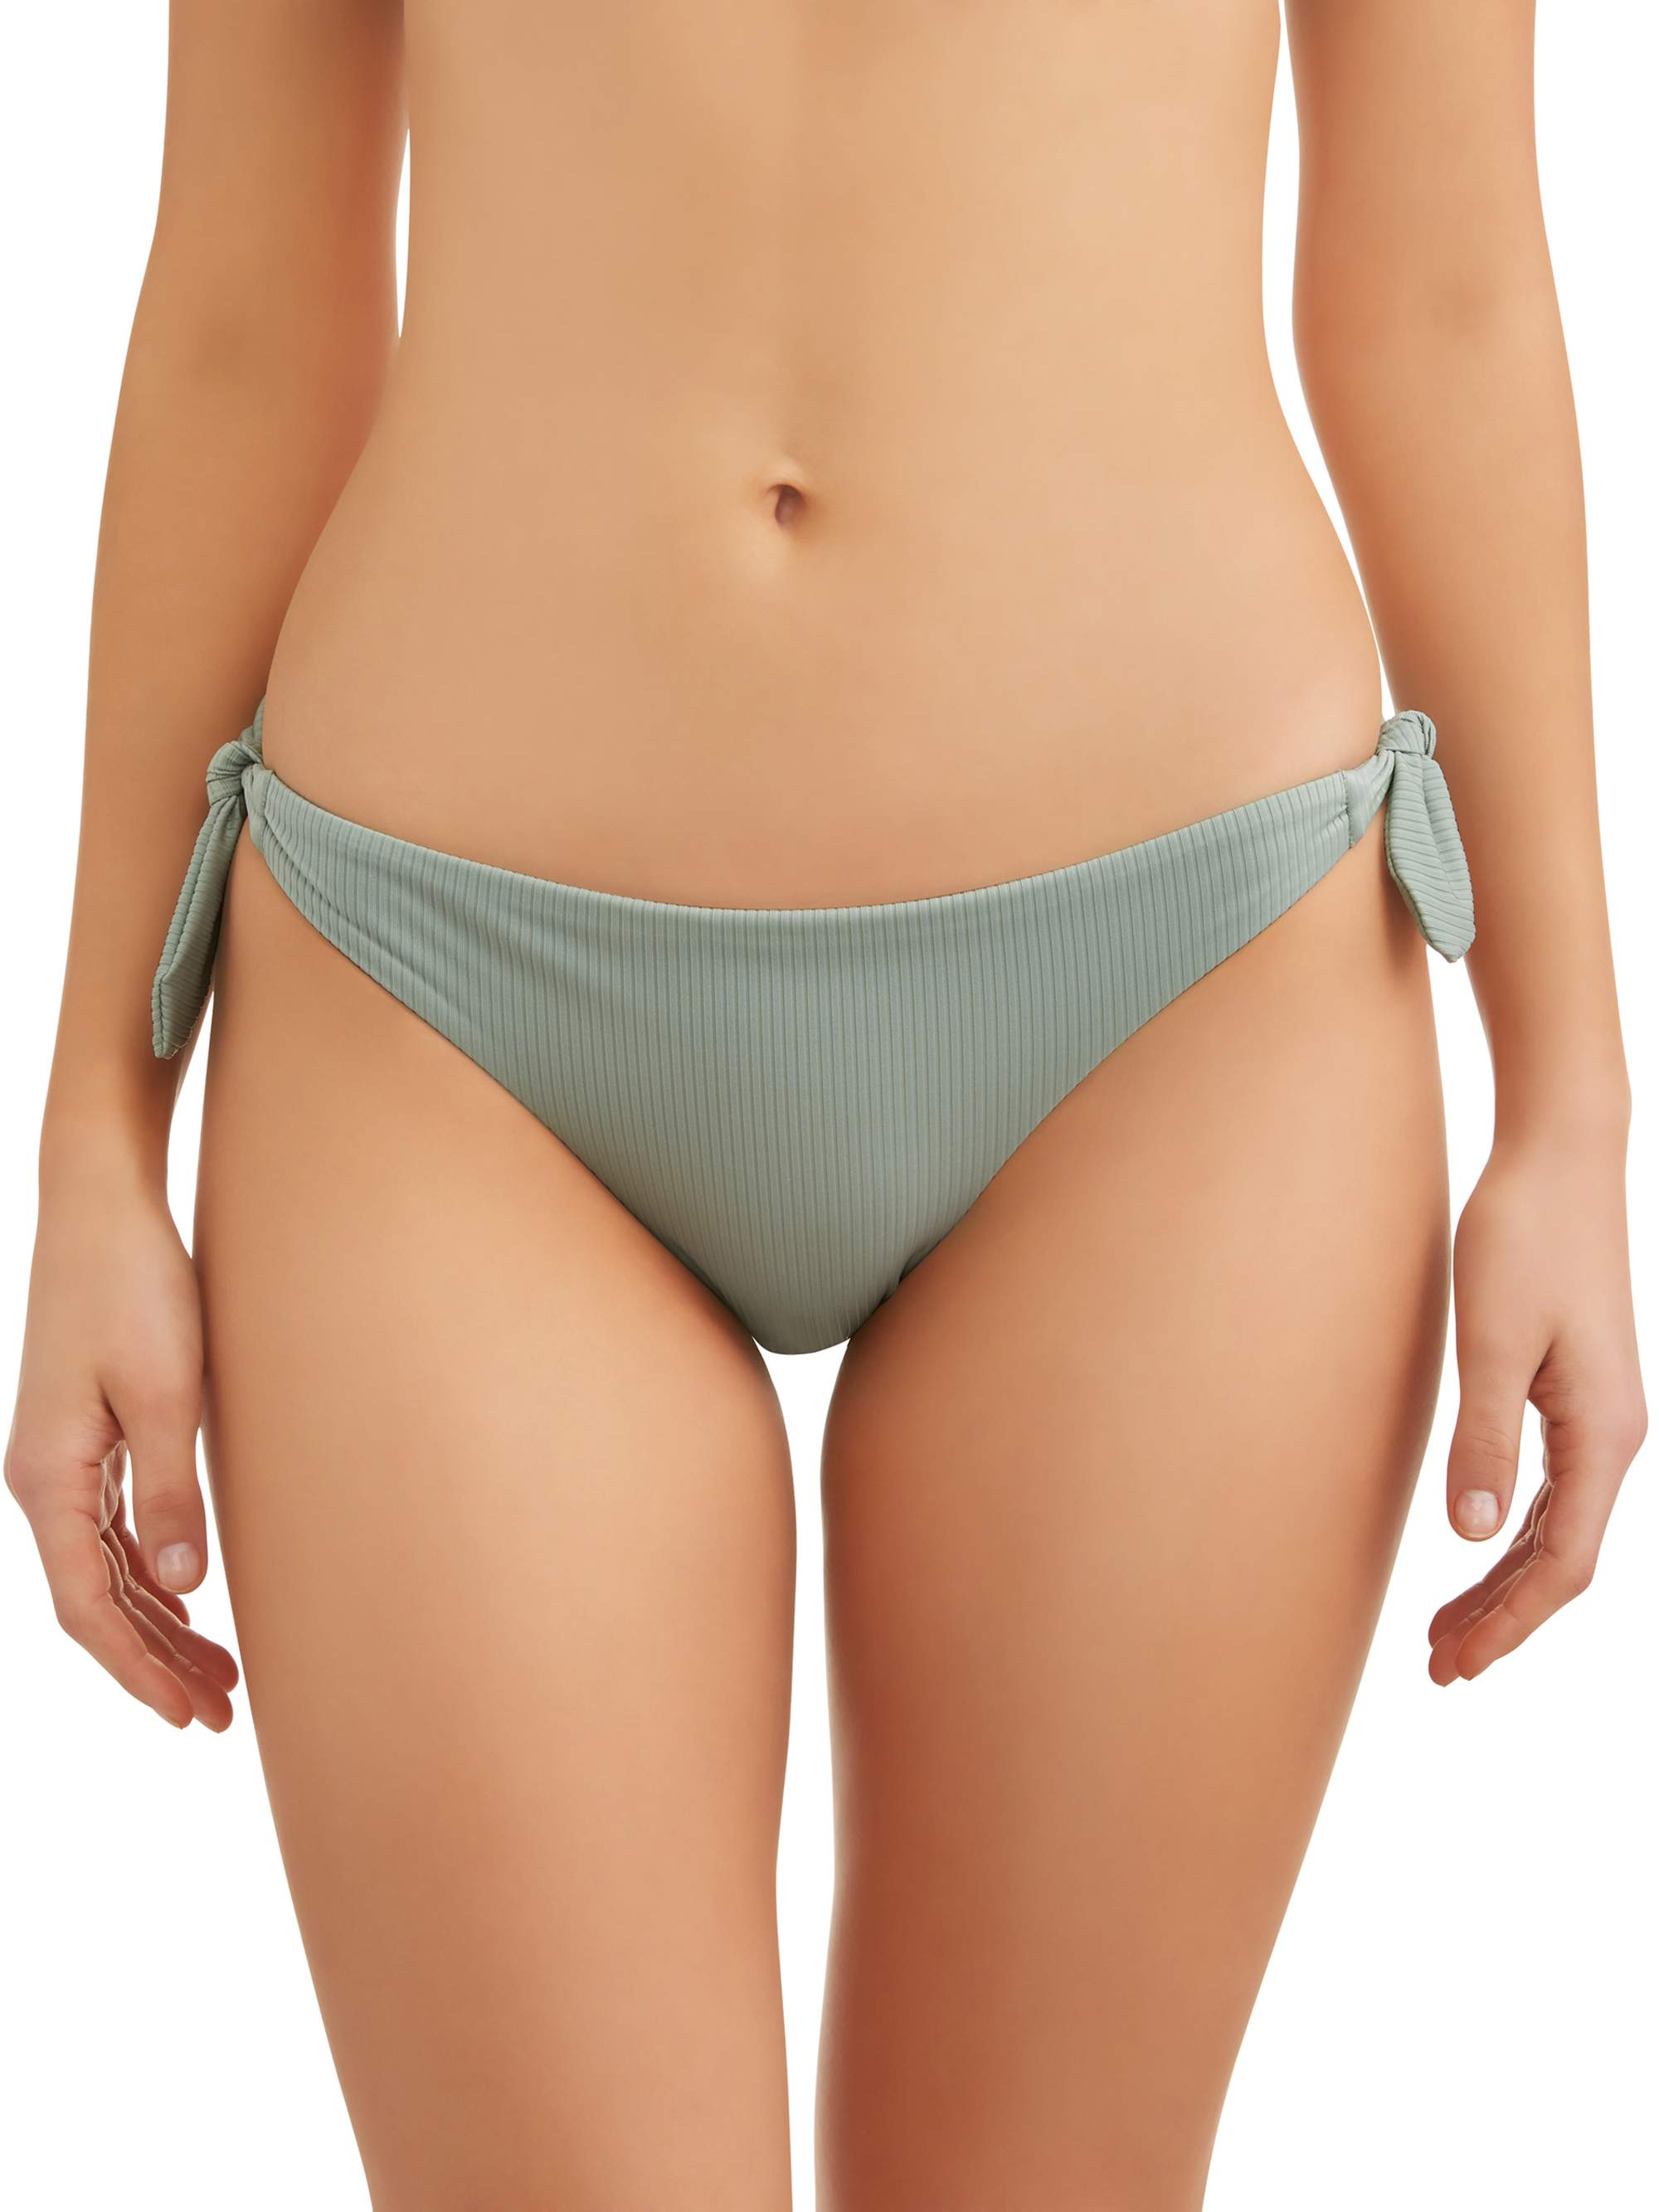 Juniors' Bunny Rib Side Tie Swimsuit Bottom